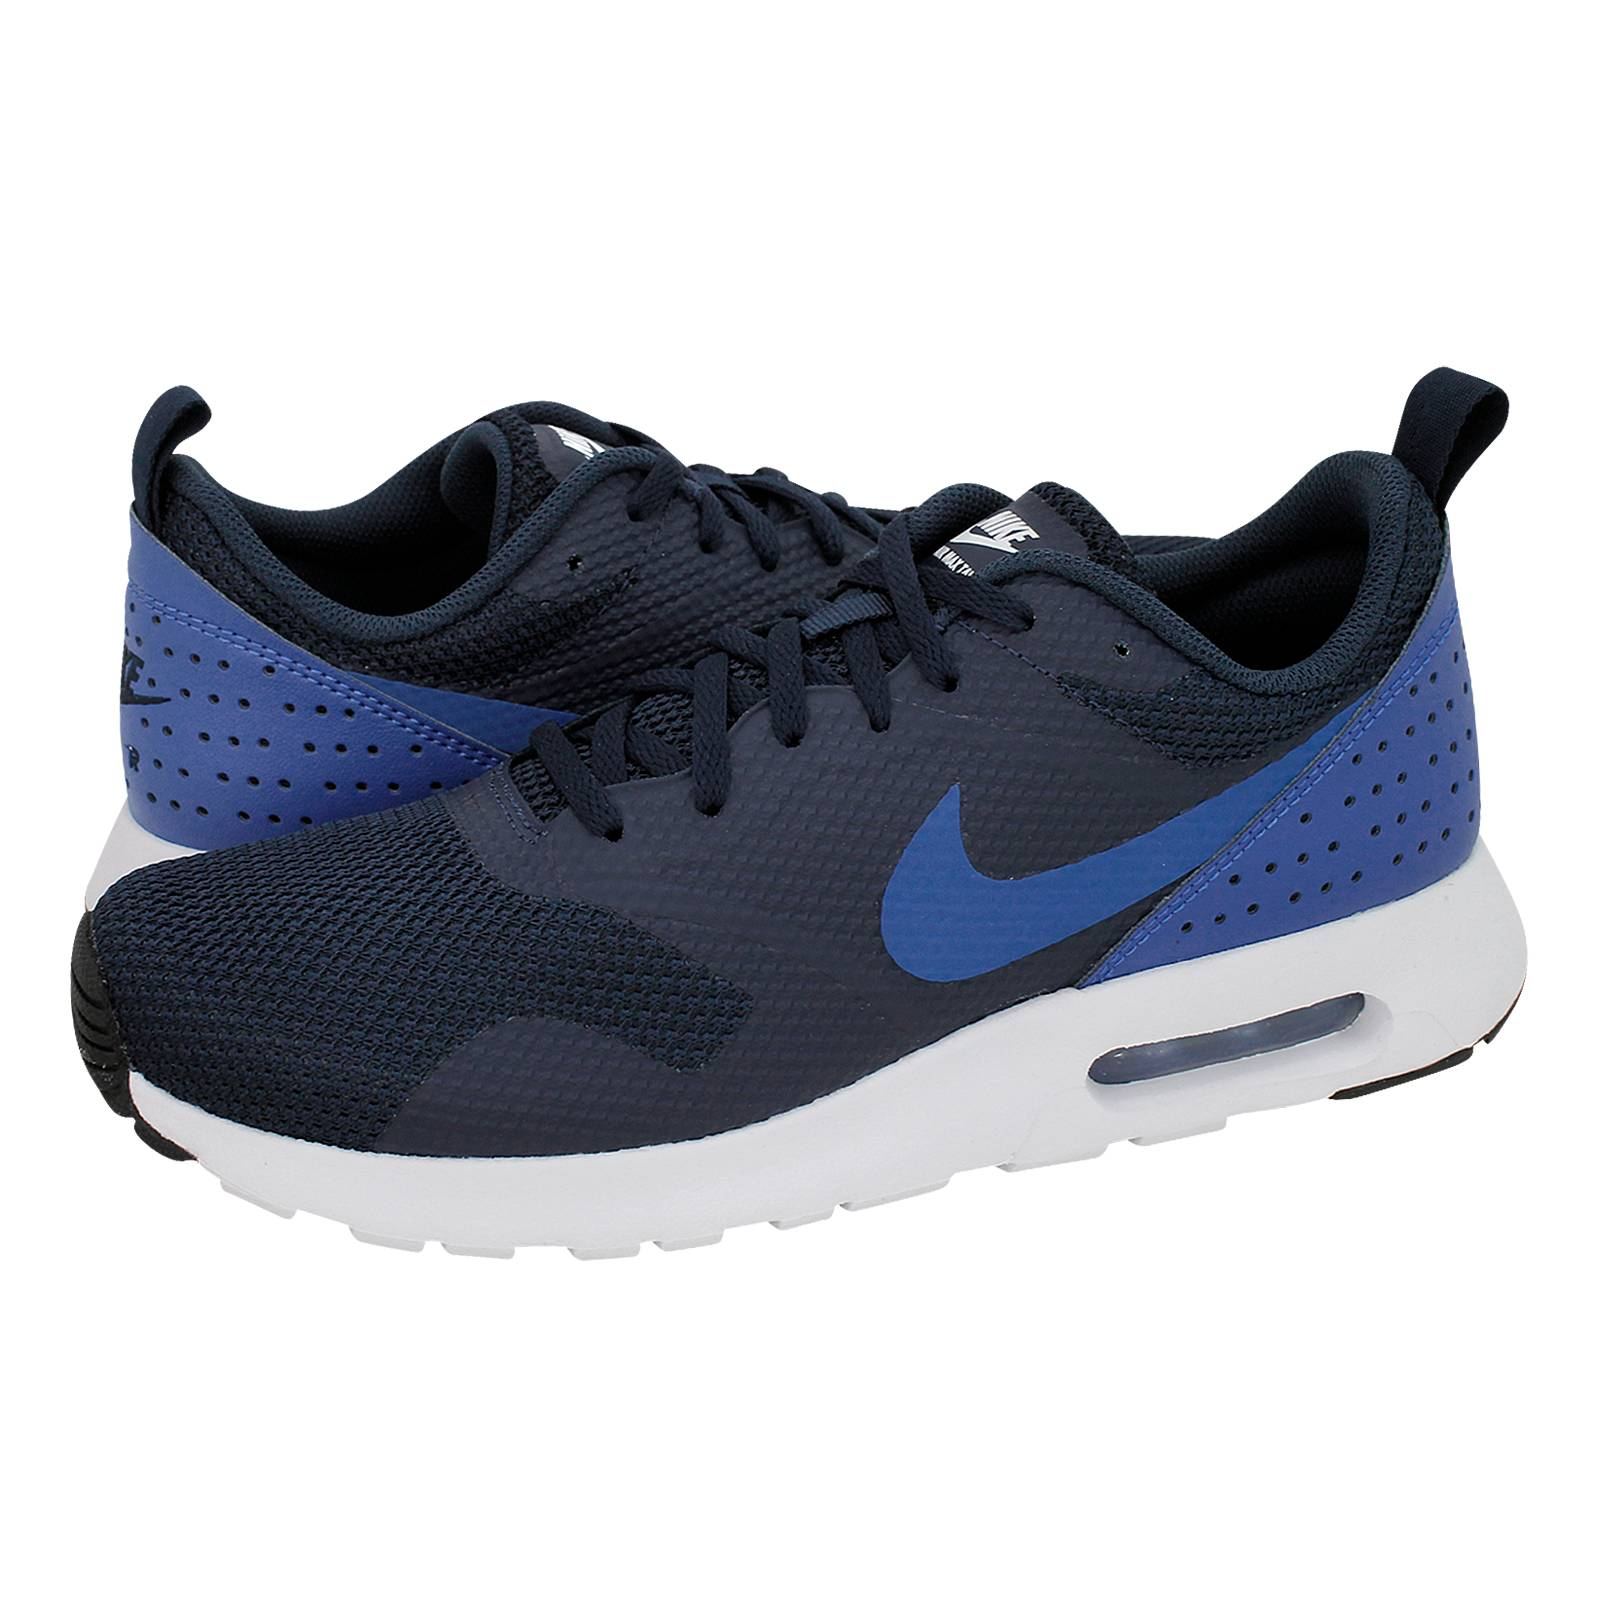 8013f9be22 Air Max Tavas - Nike Men's athletic shoes made of fabric, synthetic ...